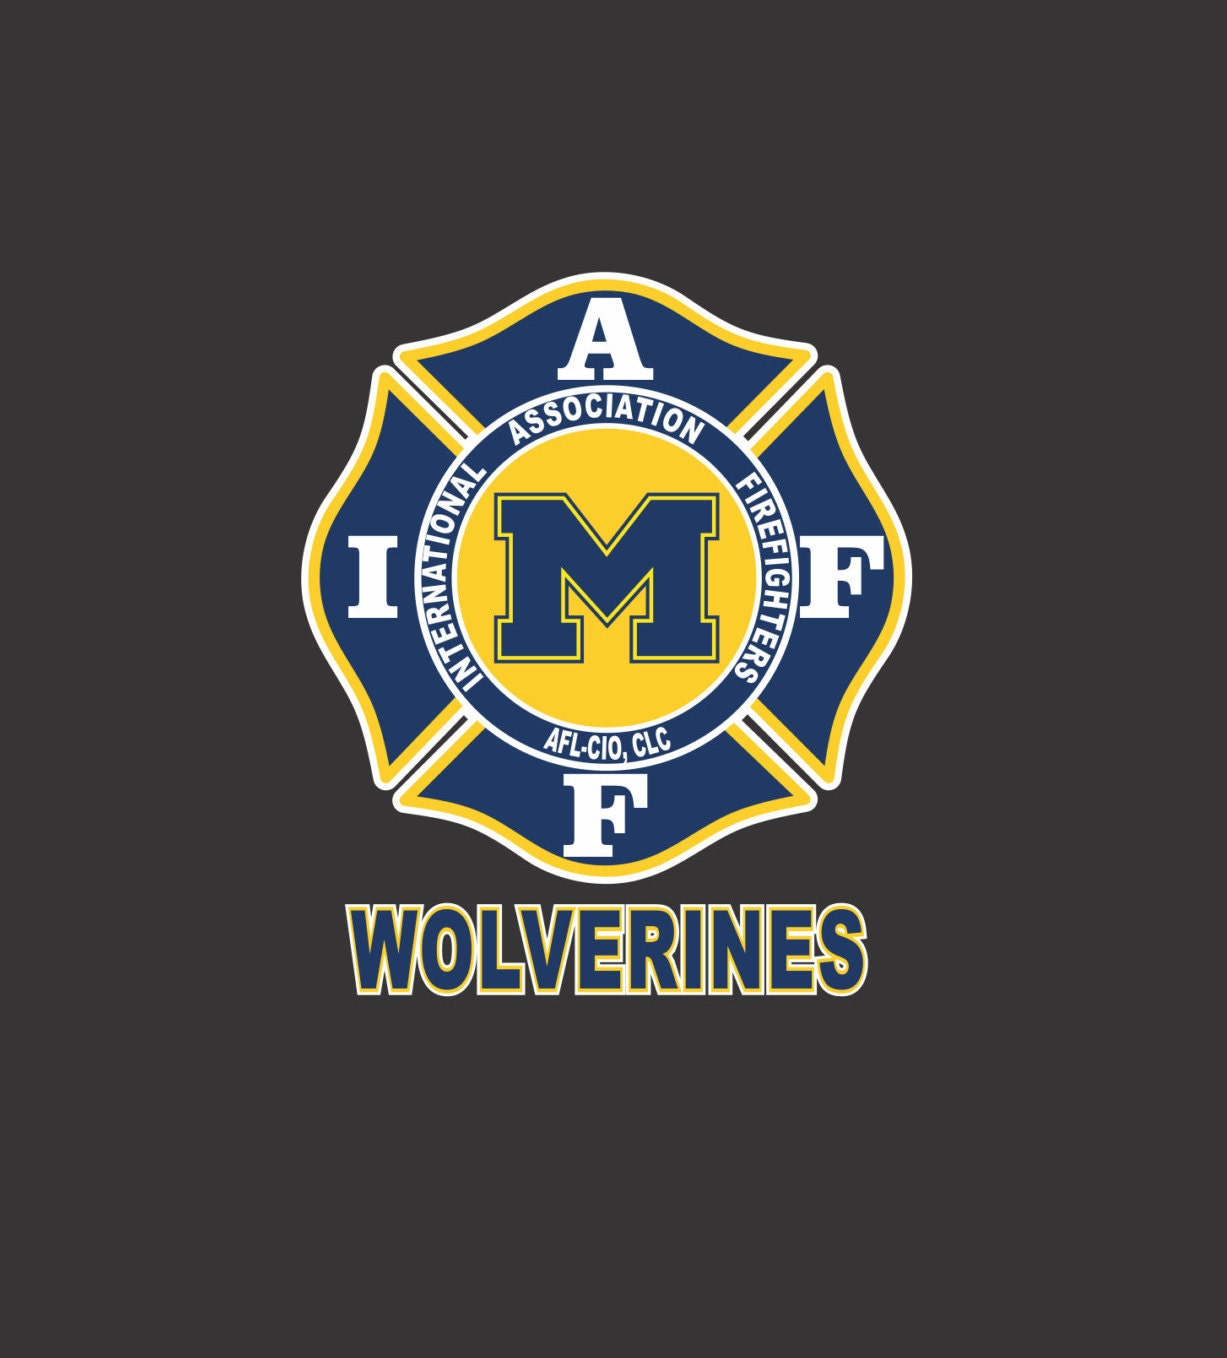 IAFF Michigan Wolverines Car Decal for Union Firefighters